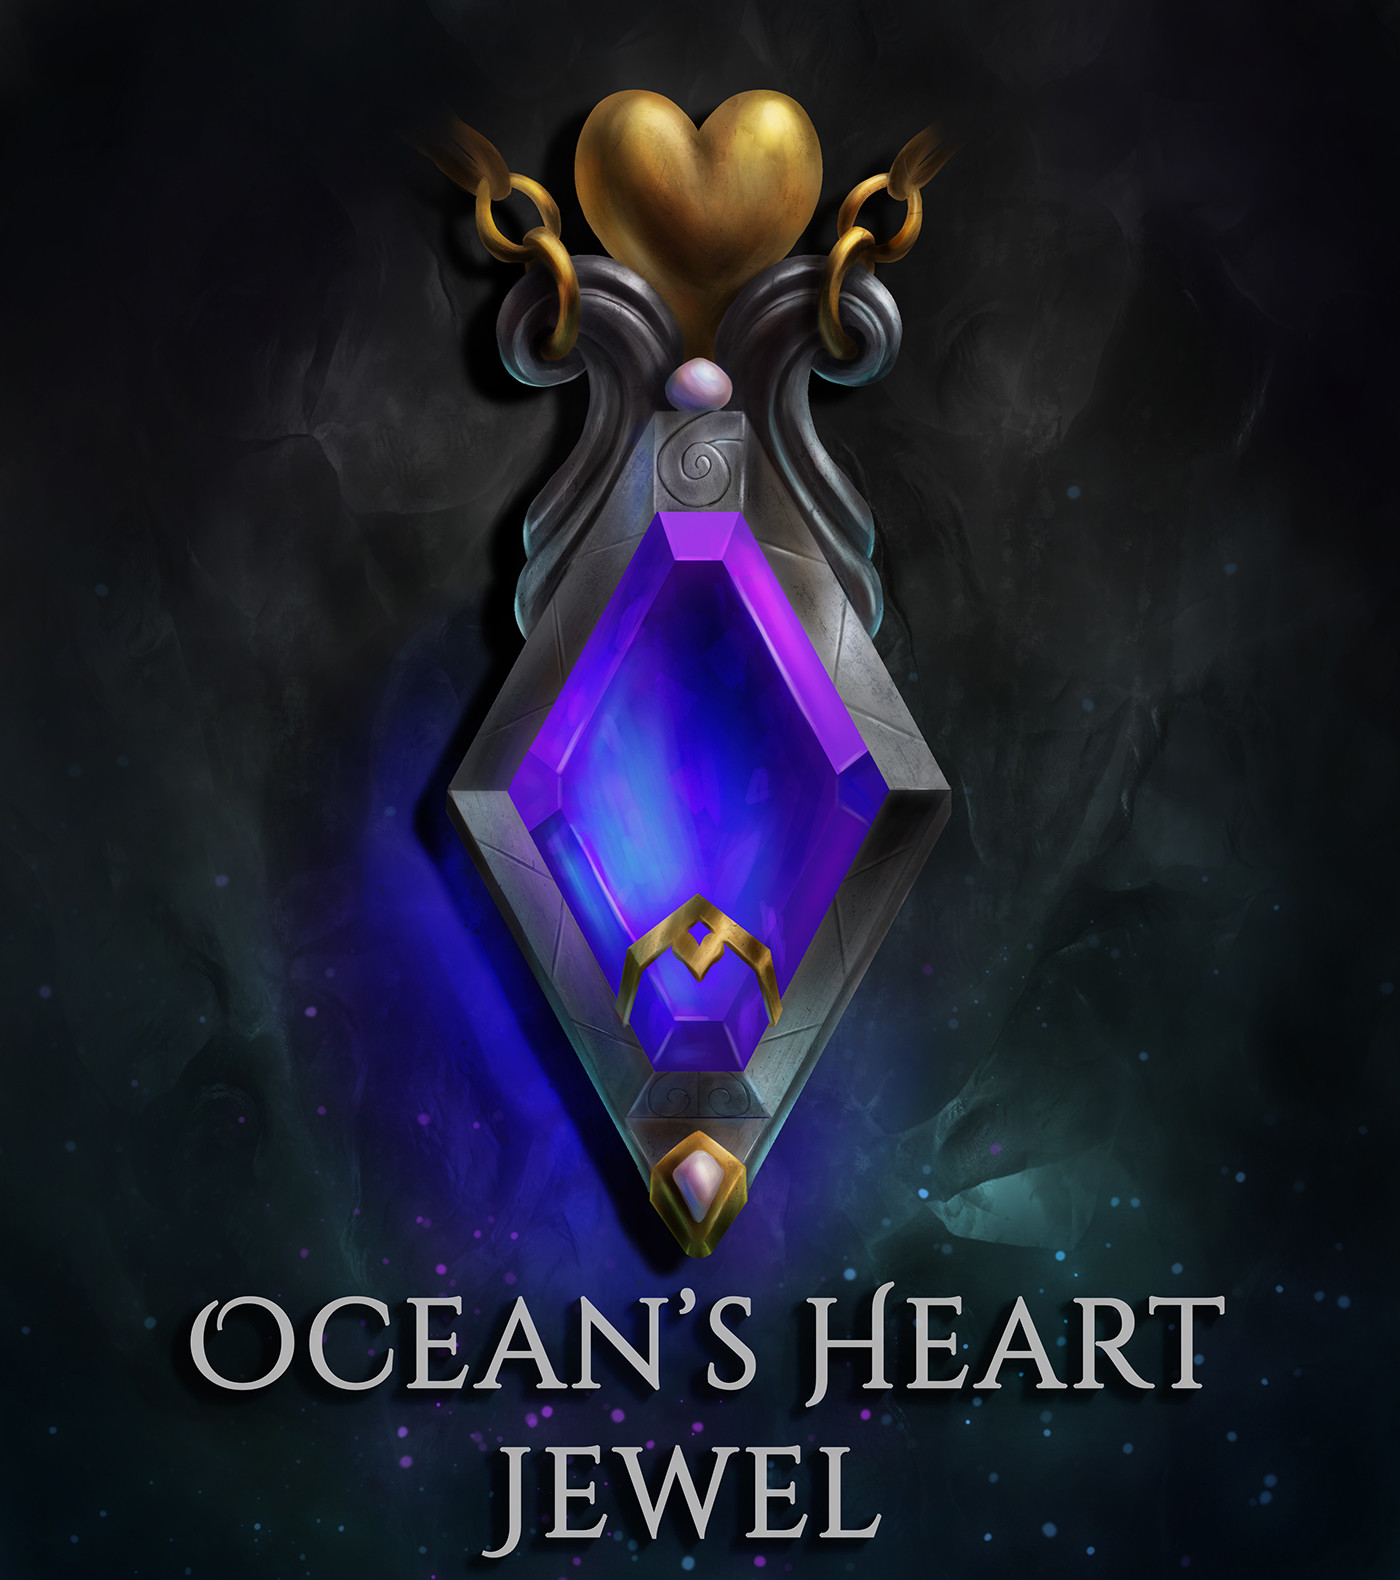 Sean guzman ocean s heart jewel sg